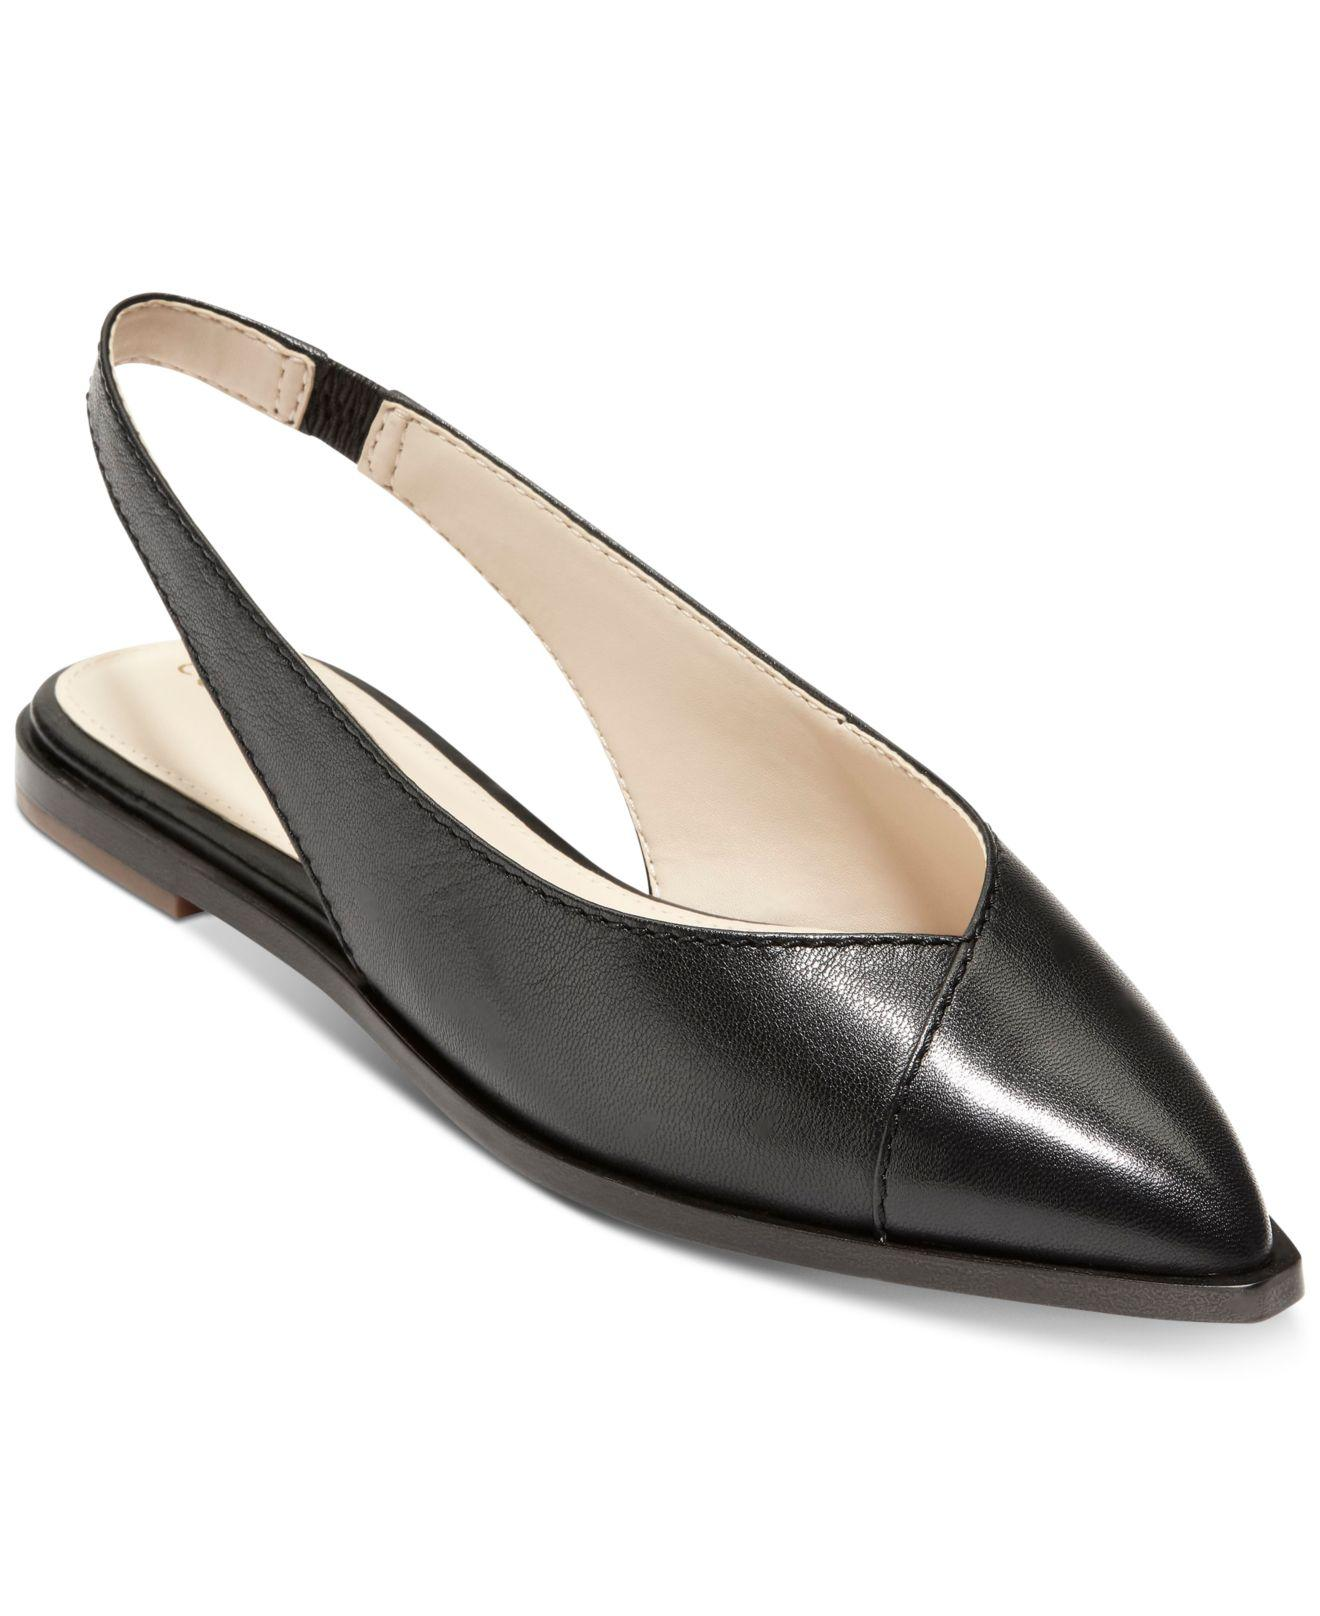 0ebbbb12ee4 Lyst - Cole Haan Anora Skimmer Flats in Black